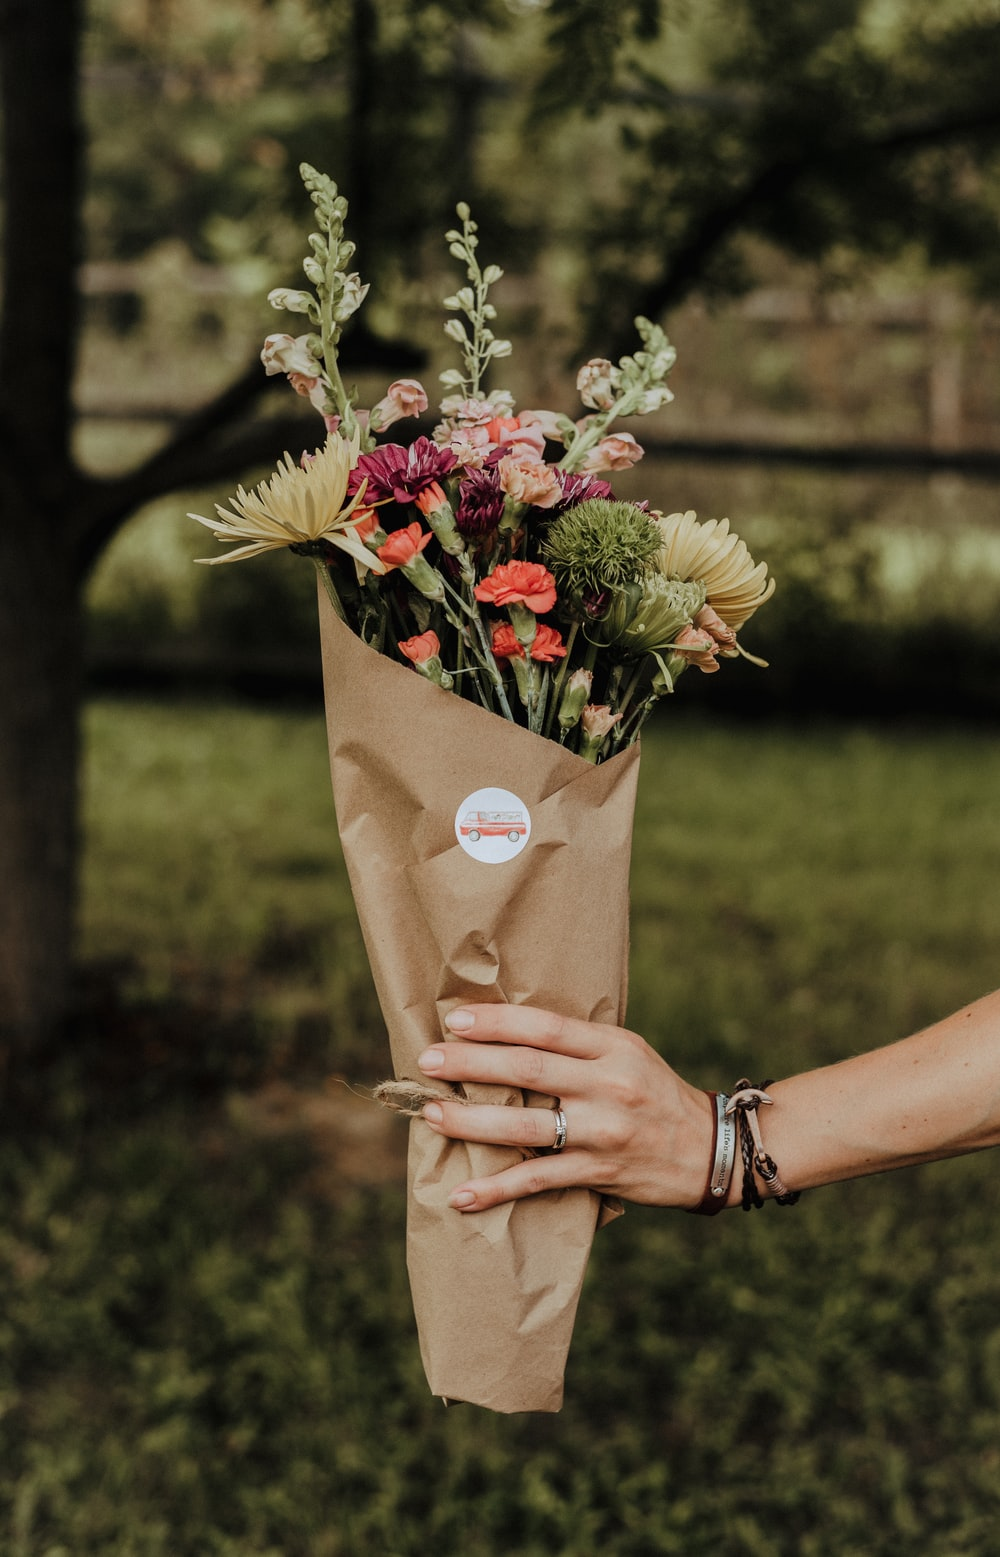 flower bouquet wrapped in brown paper